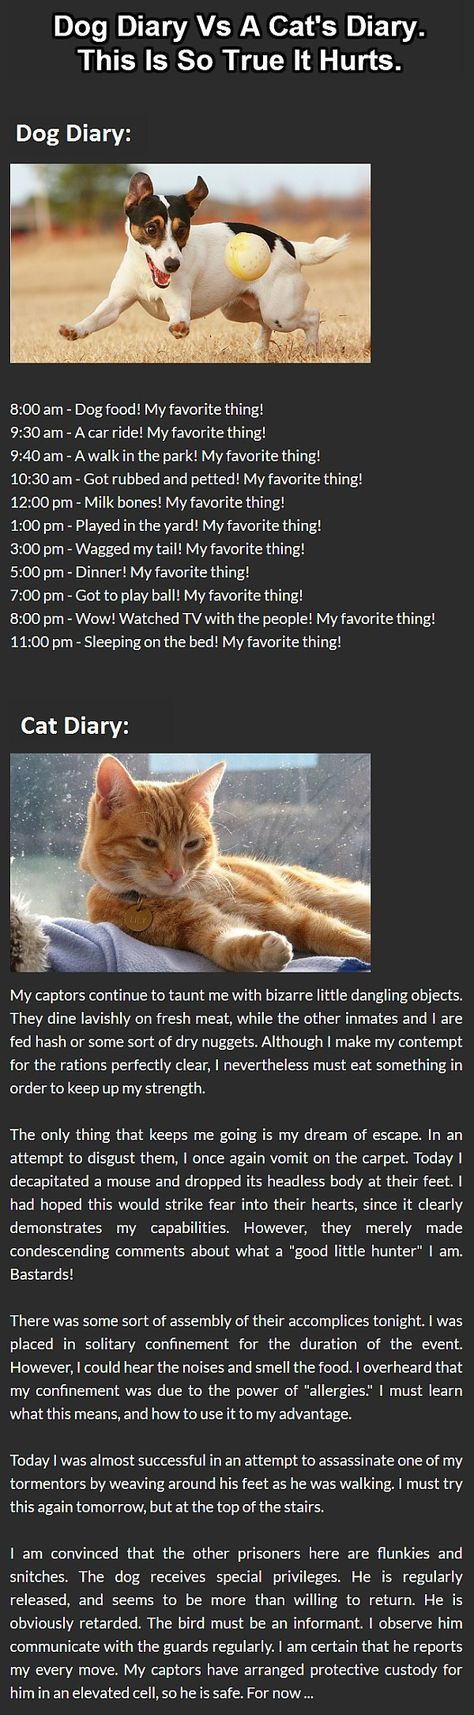 Cats Vs Dogs This Is The Best Diary Comparison Ever